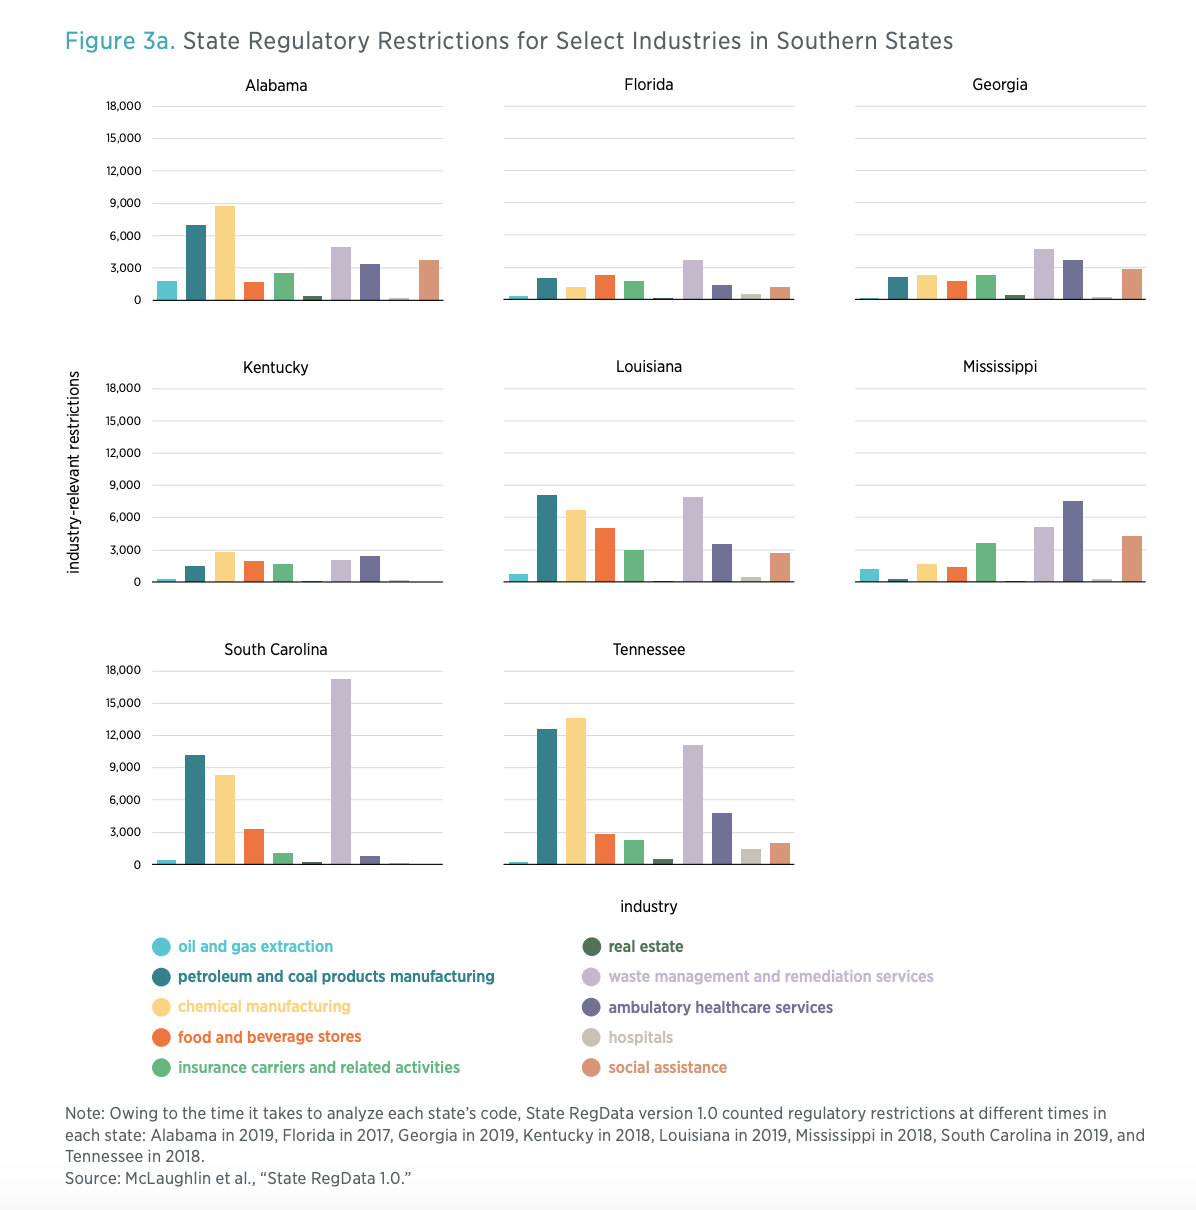 Figure 3a. State Regulatory Restrictions for Select Industries in Southern States